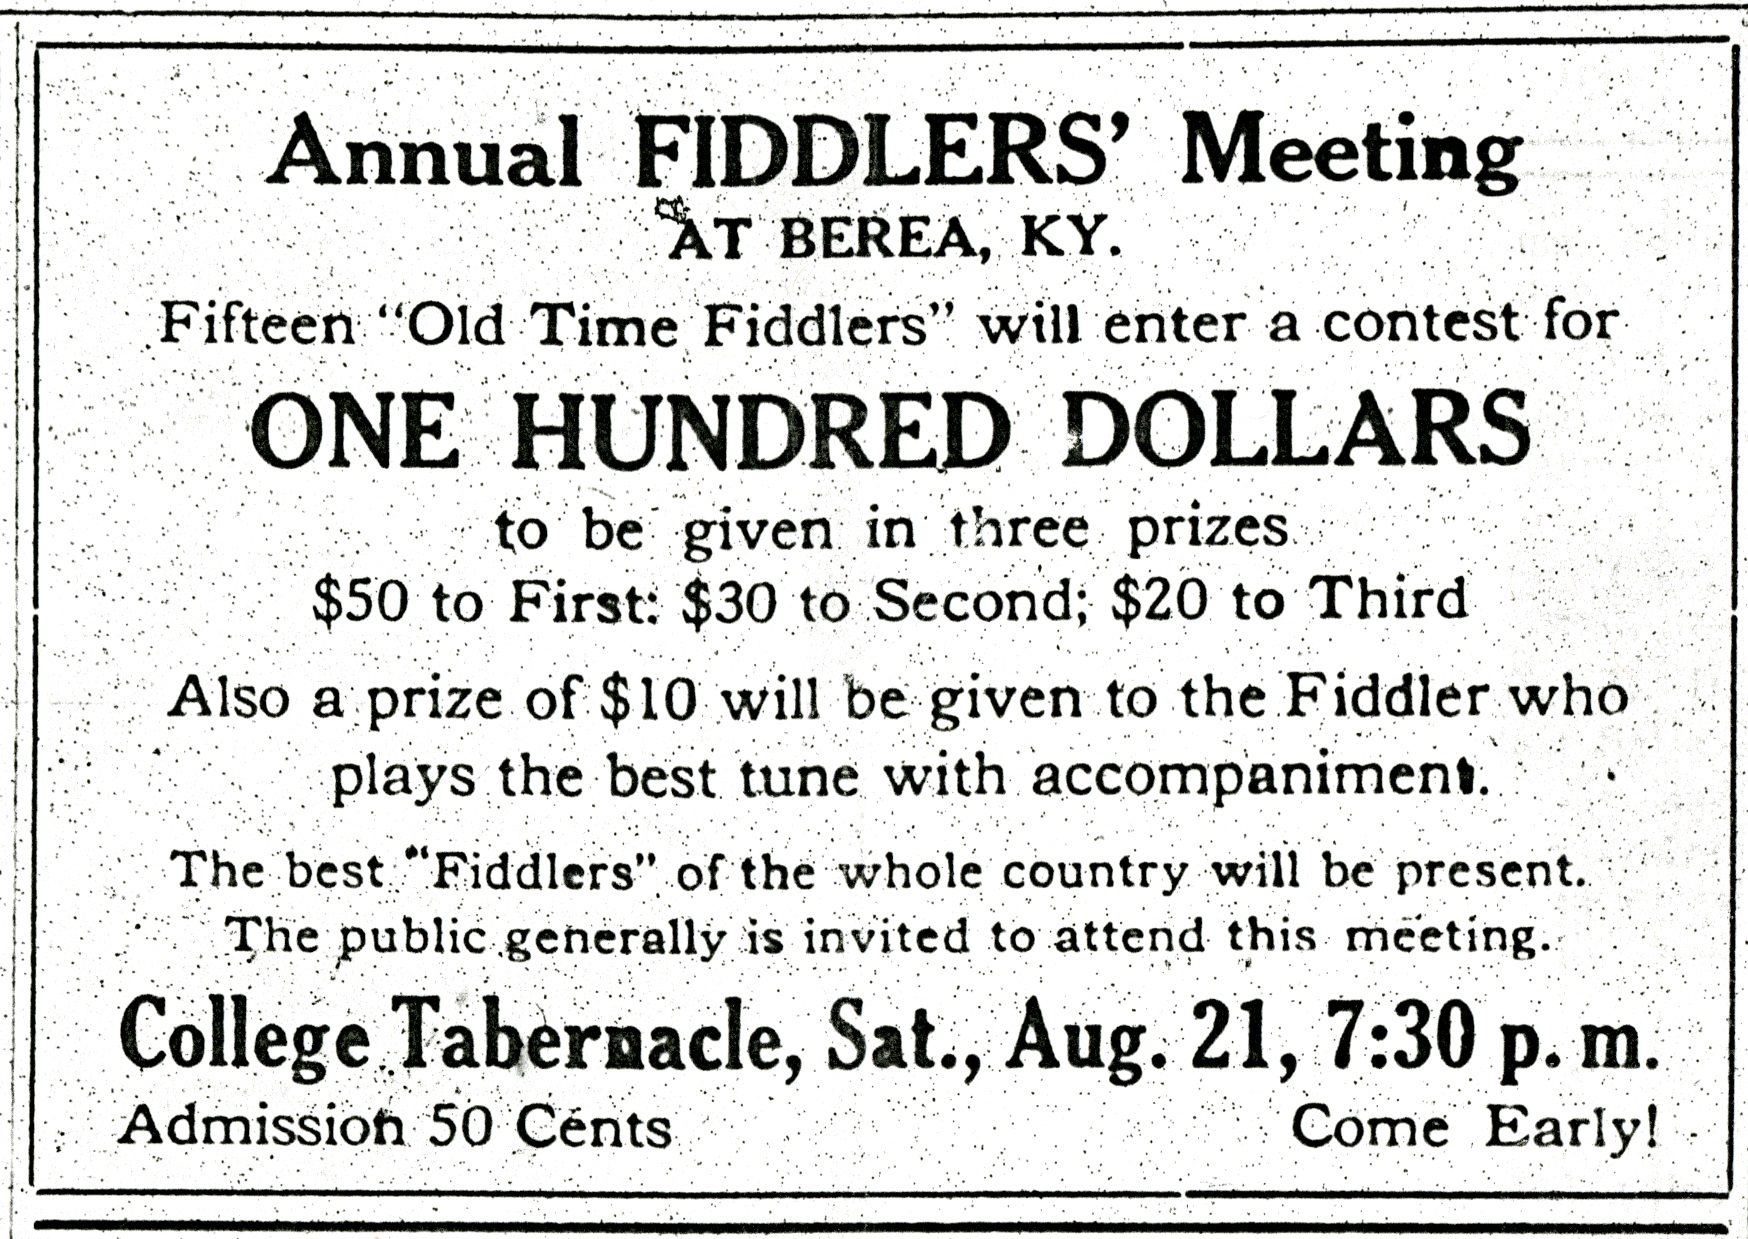 Announcement of Annual Fiddlers' Meeting - The Berea Citizen, August 12, 1920